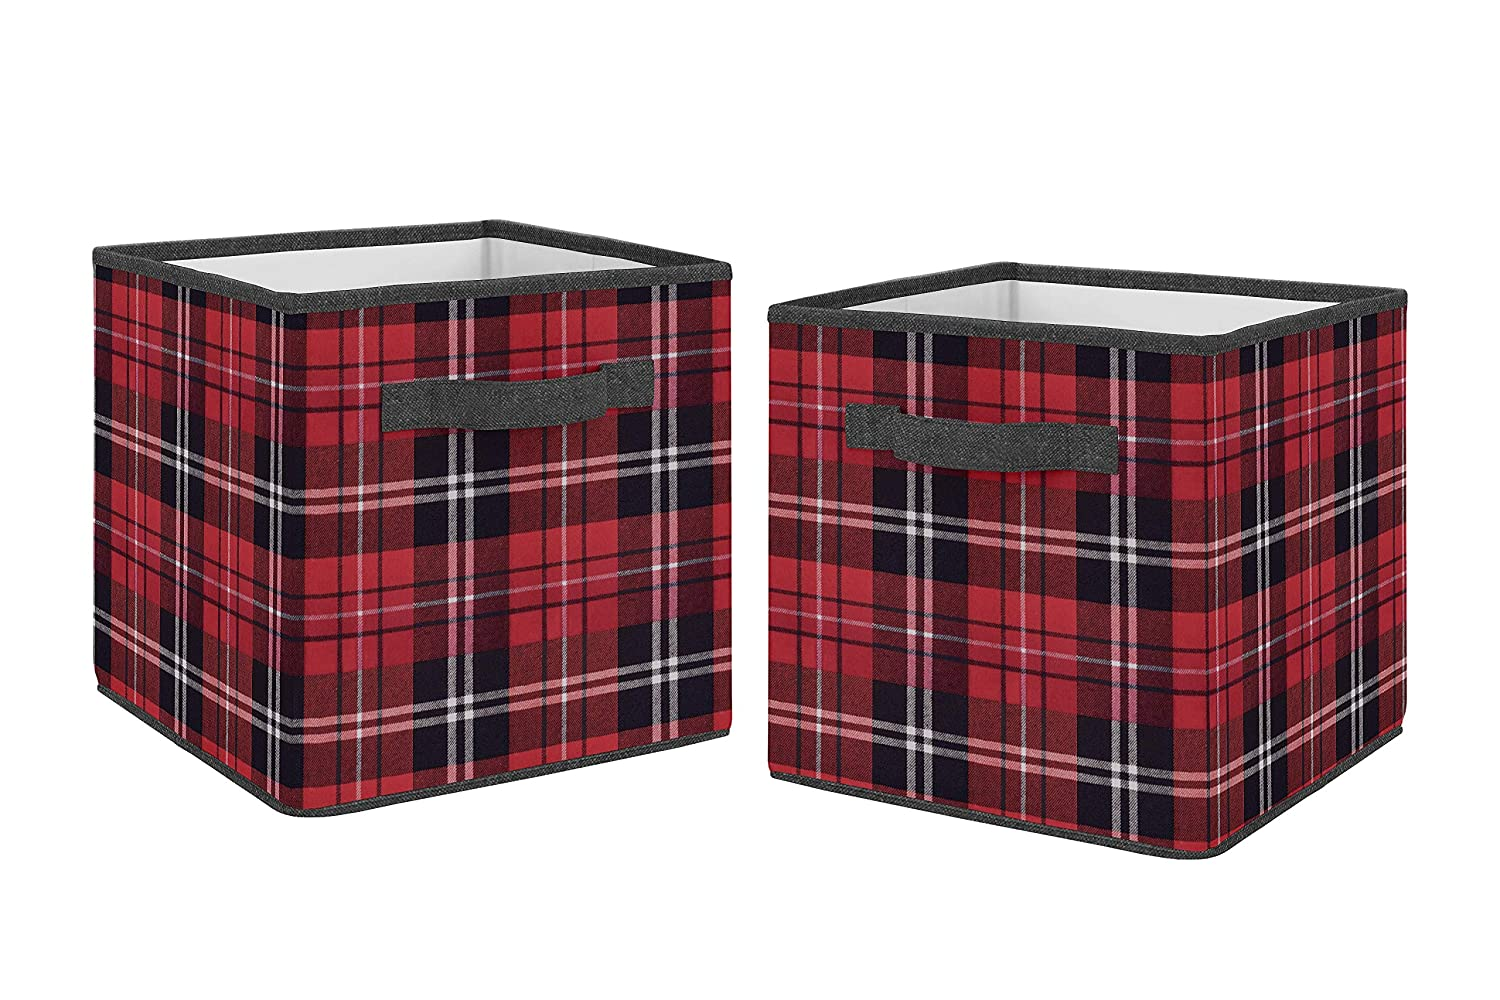 Sweet Jojo Designs Red and Black Woodland Plaid Flannel Organizer Storage Bins for Rustic Patch Collection - Set of 2